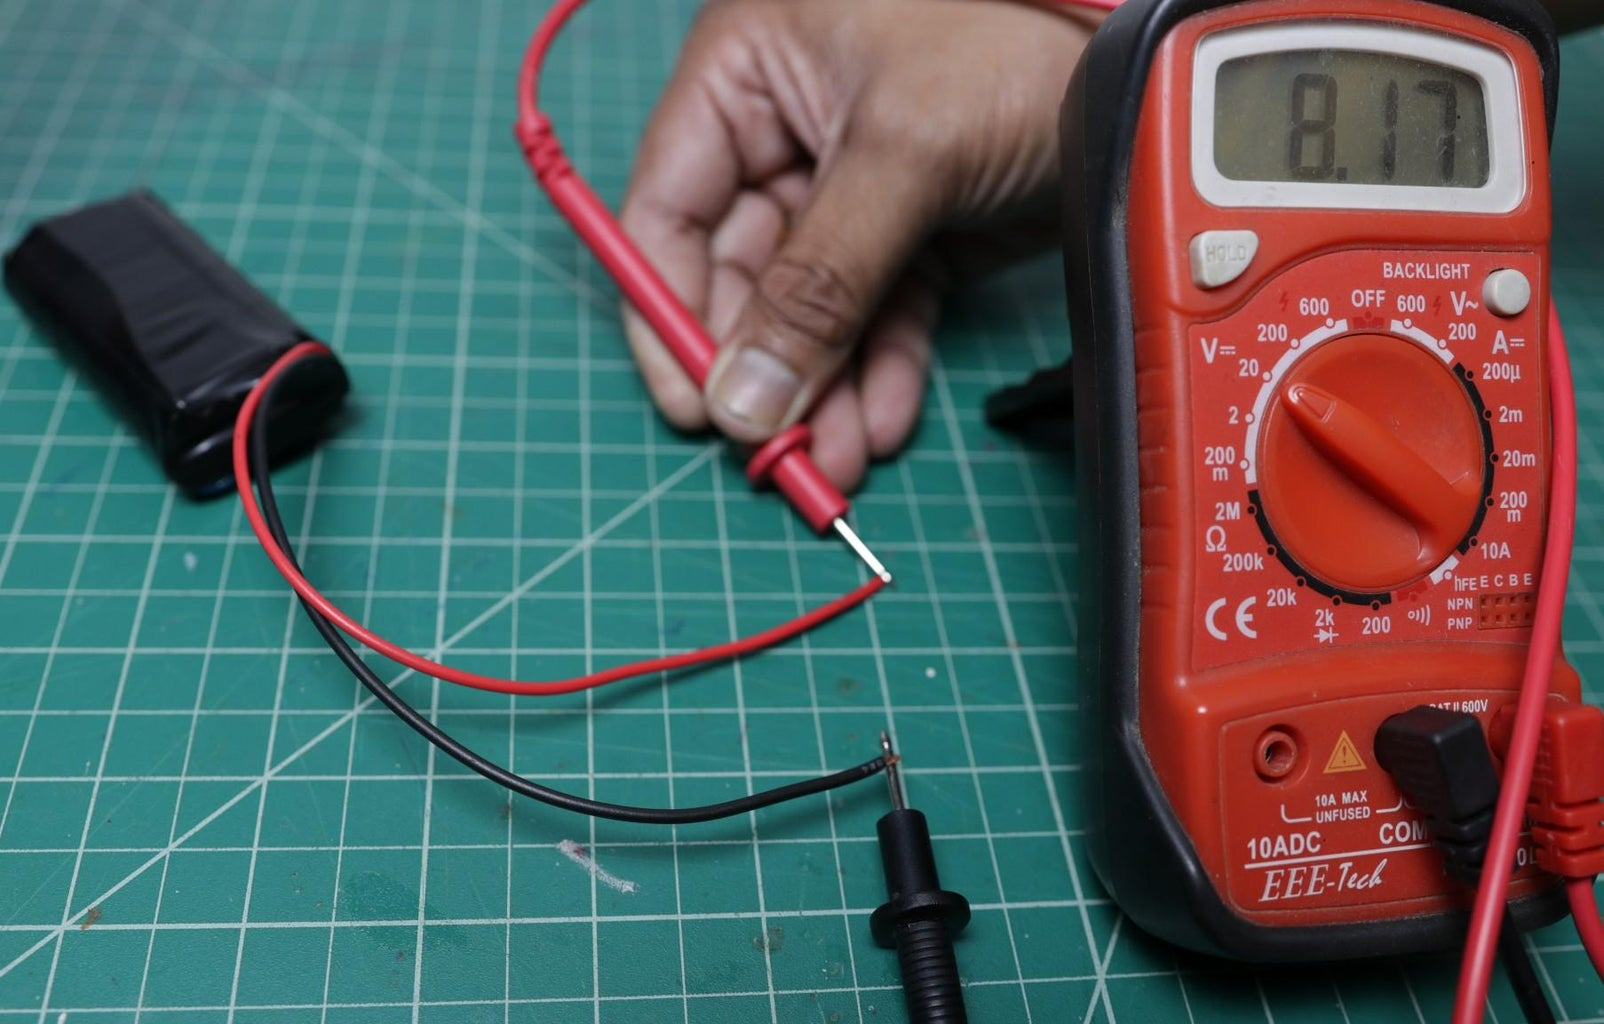 Insulate the Battery Pack